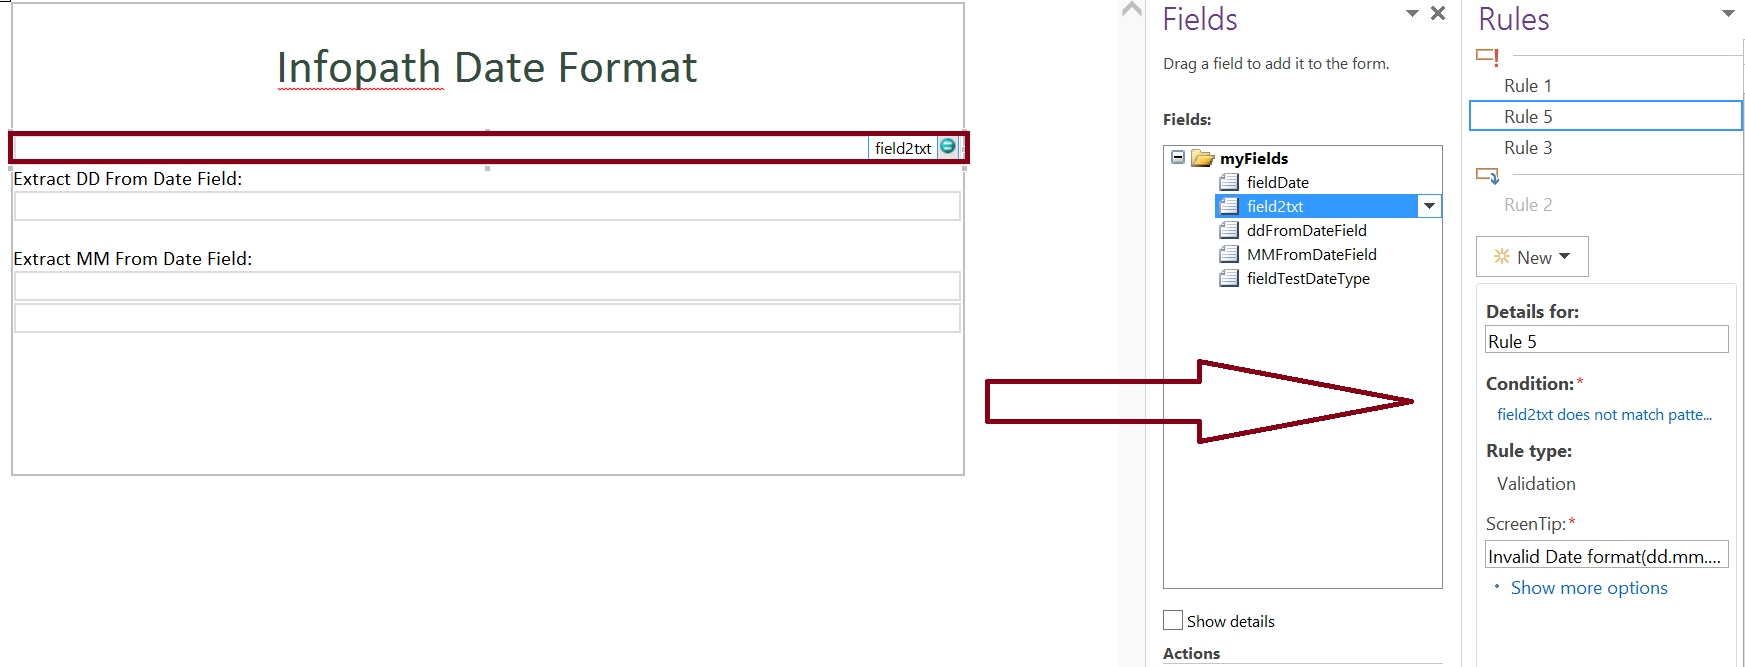 Date format validation in infopath form - does not match custom pattern